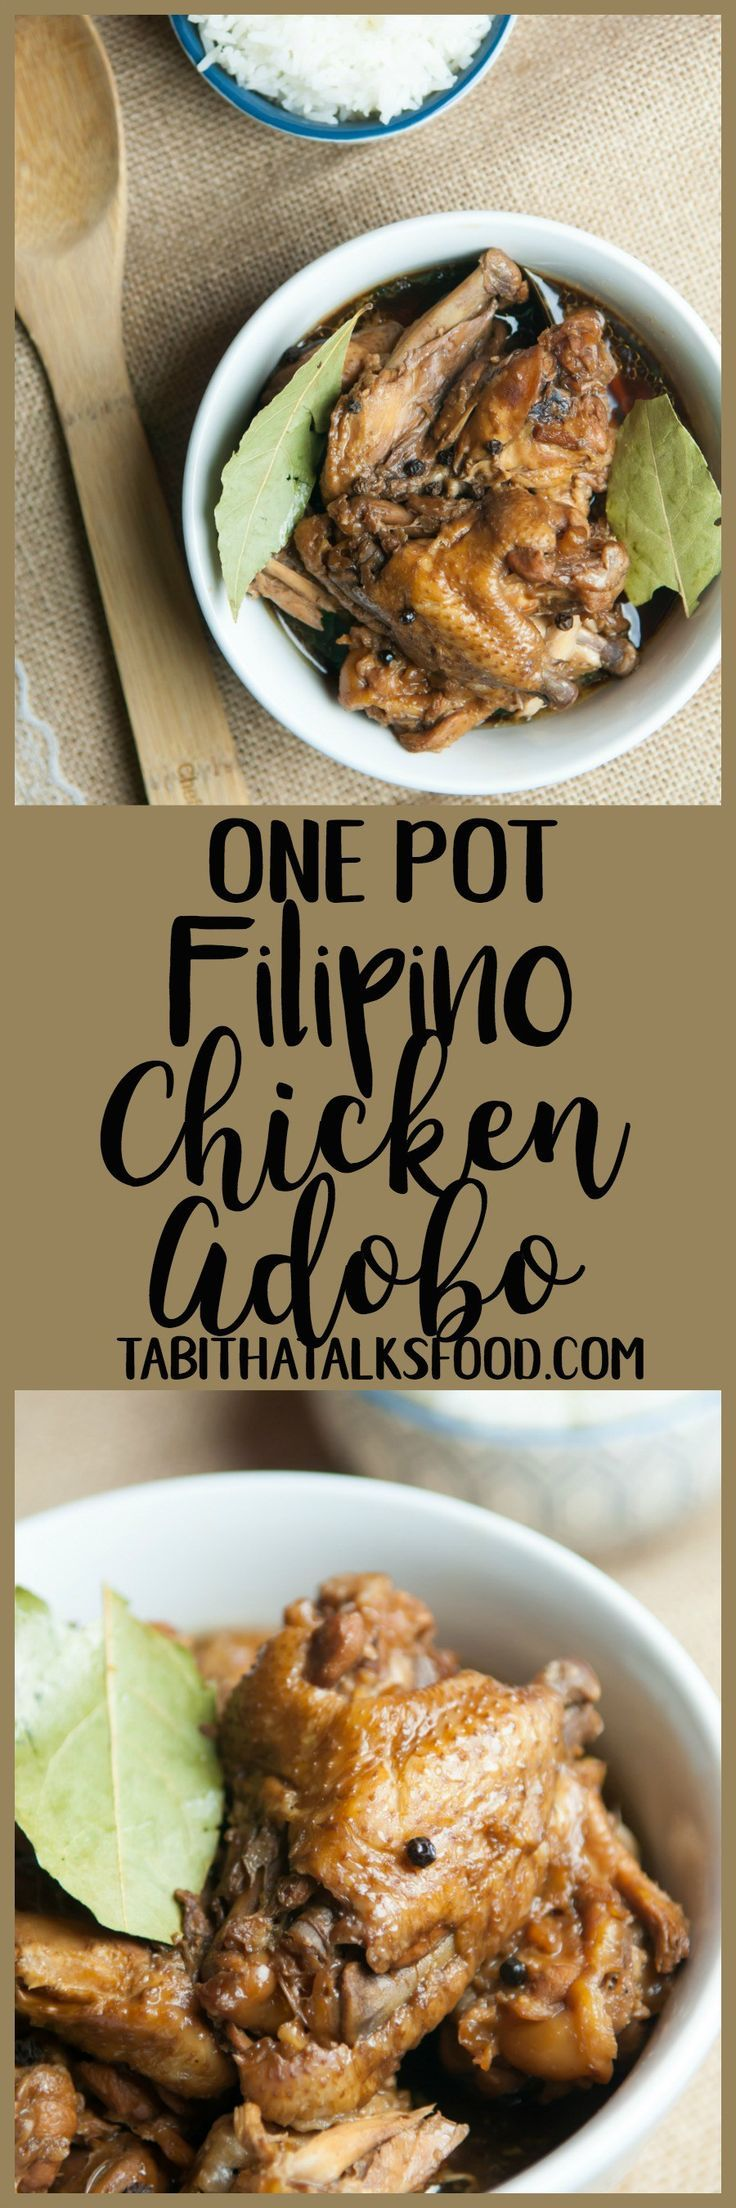 This Filipino chicken adobo is a tender, slow-braised chicken in a soy and vinegar sauce. Ready and on your dinner table in less than an hour!